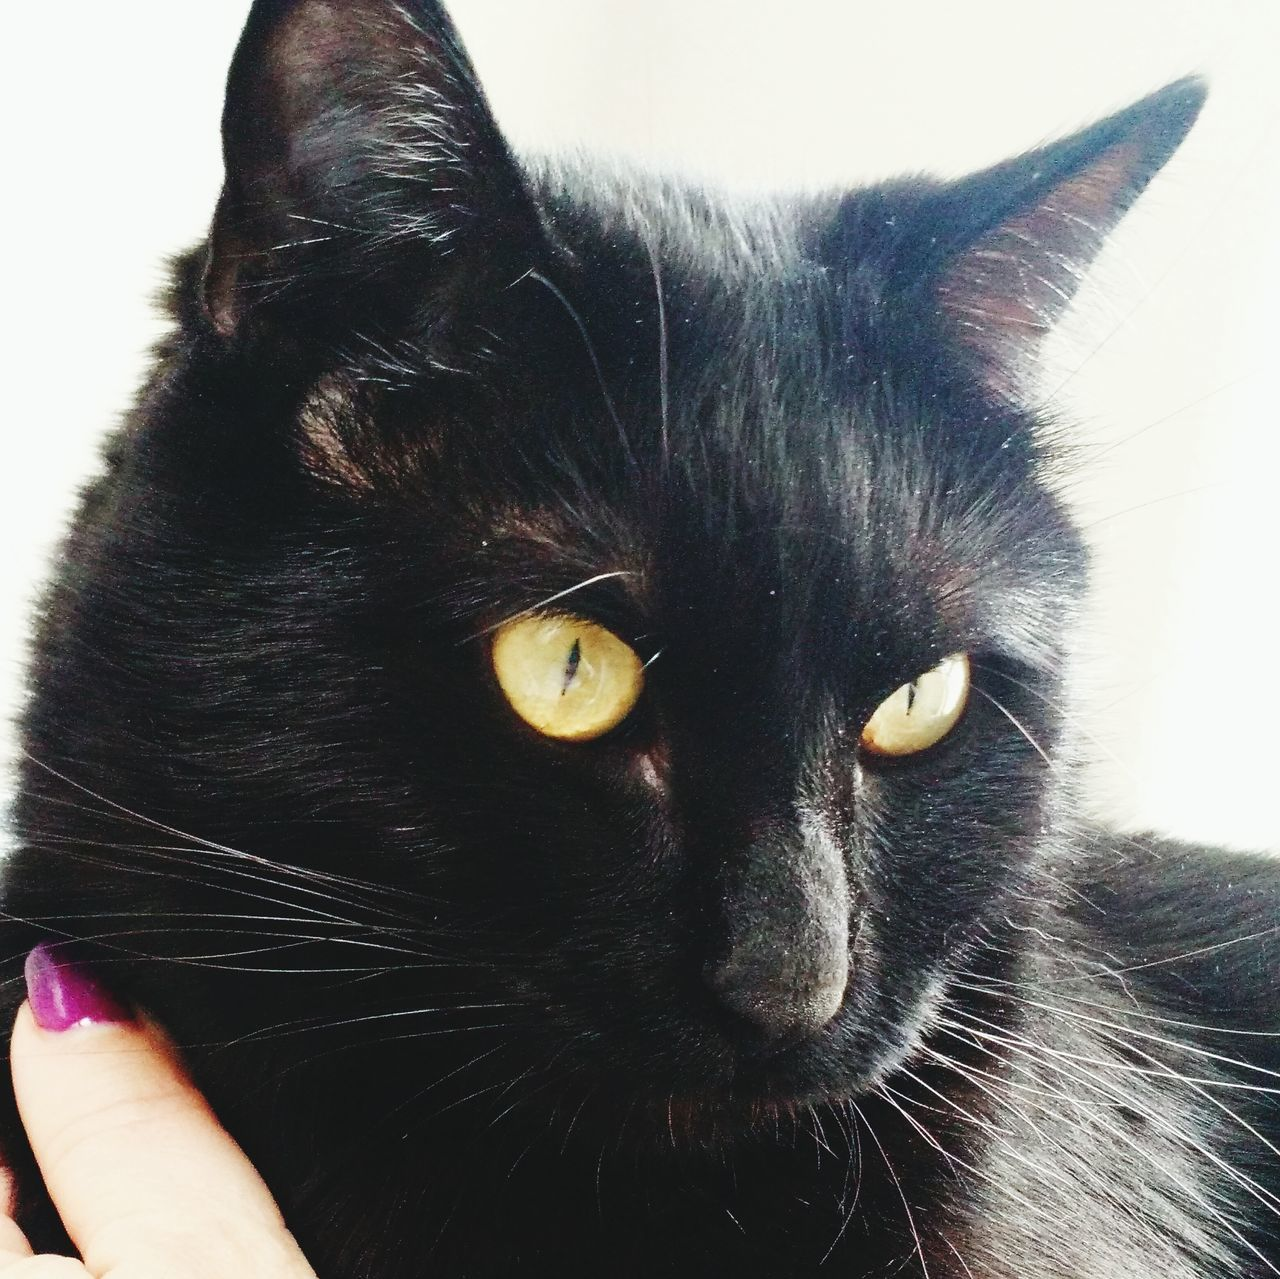 Pets Domestic Animals Mammal Domestic Cat Animal Themes One Animal Feline Indoors  Human Body Part Close-up Yellow Eyes Human Hand One Person Day People Black Cats Are Beautiful Black Cat Beauty In Nature Cat Lovers Black Cat Photography Cats Of EyeEm Cat♡ Cat Gaze Portrait Sunlight